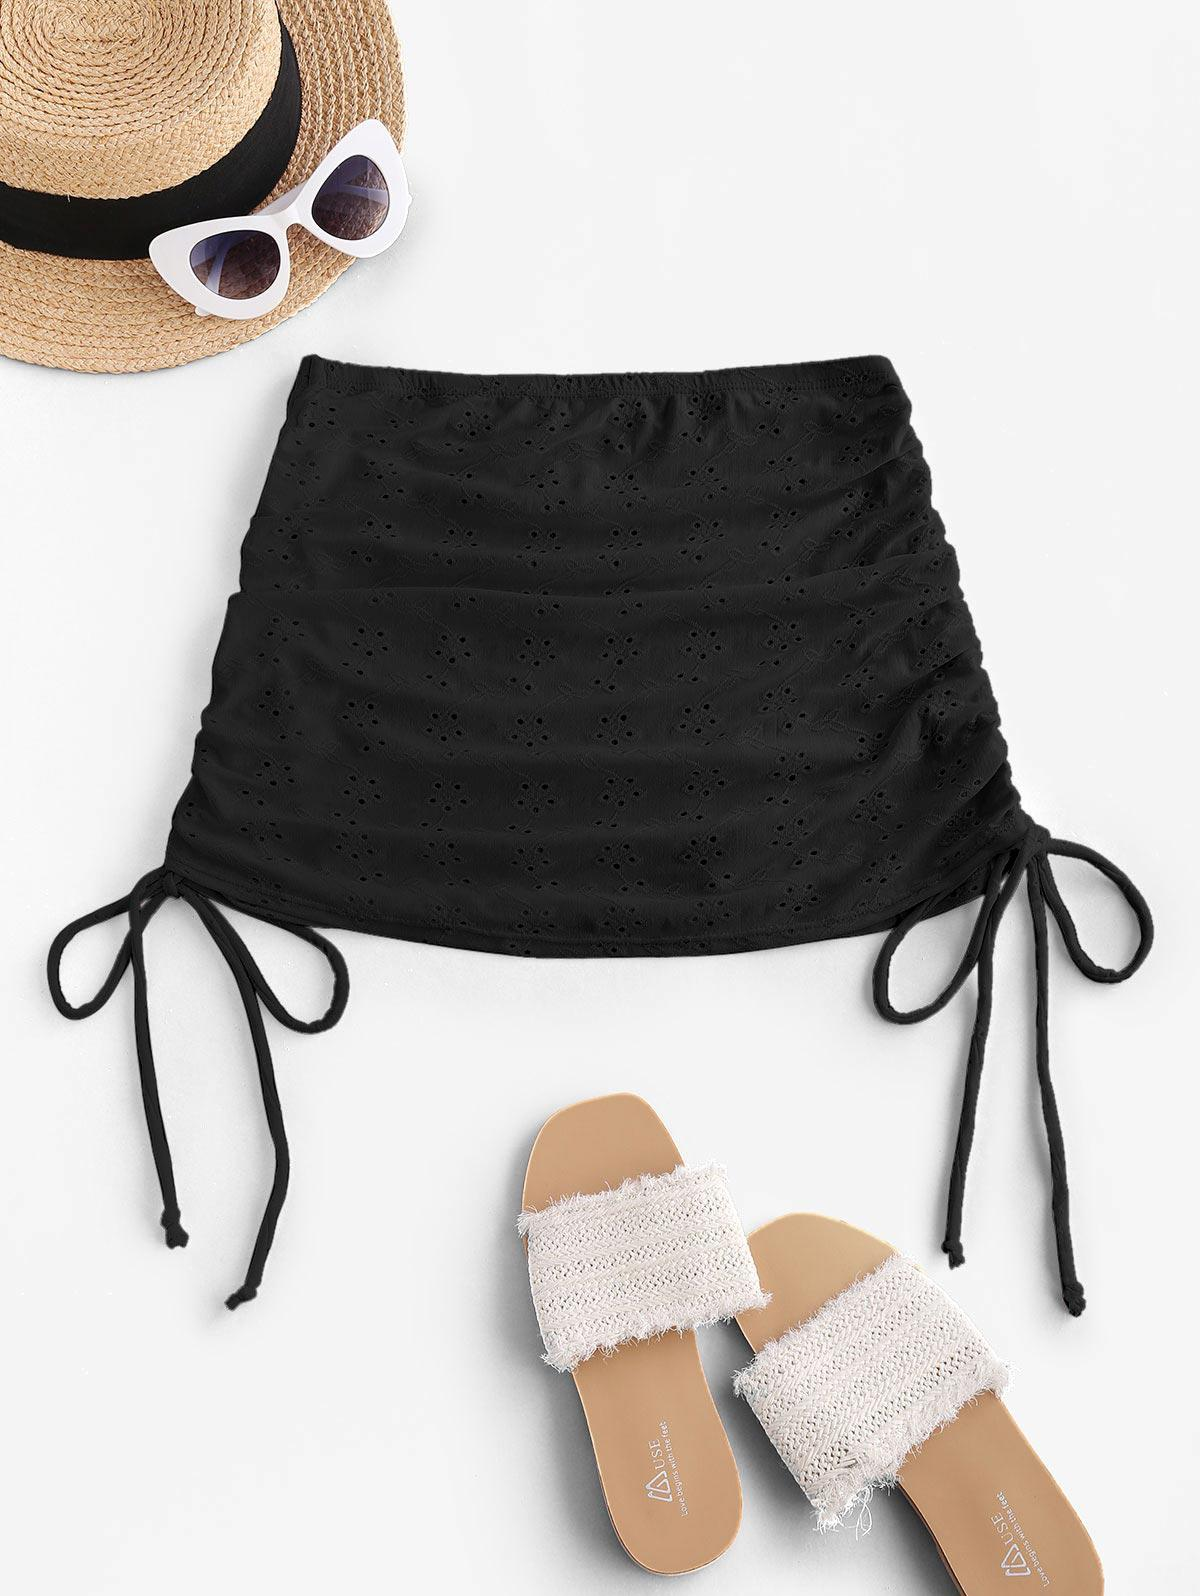 ZAFUL Broderie Anglaise Cinched Side Mini Beach Skirt